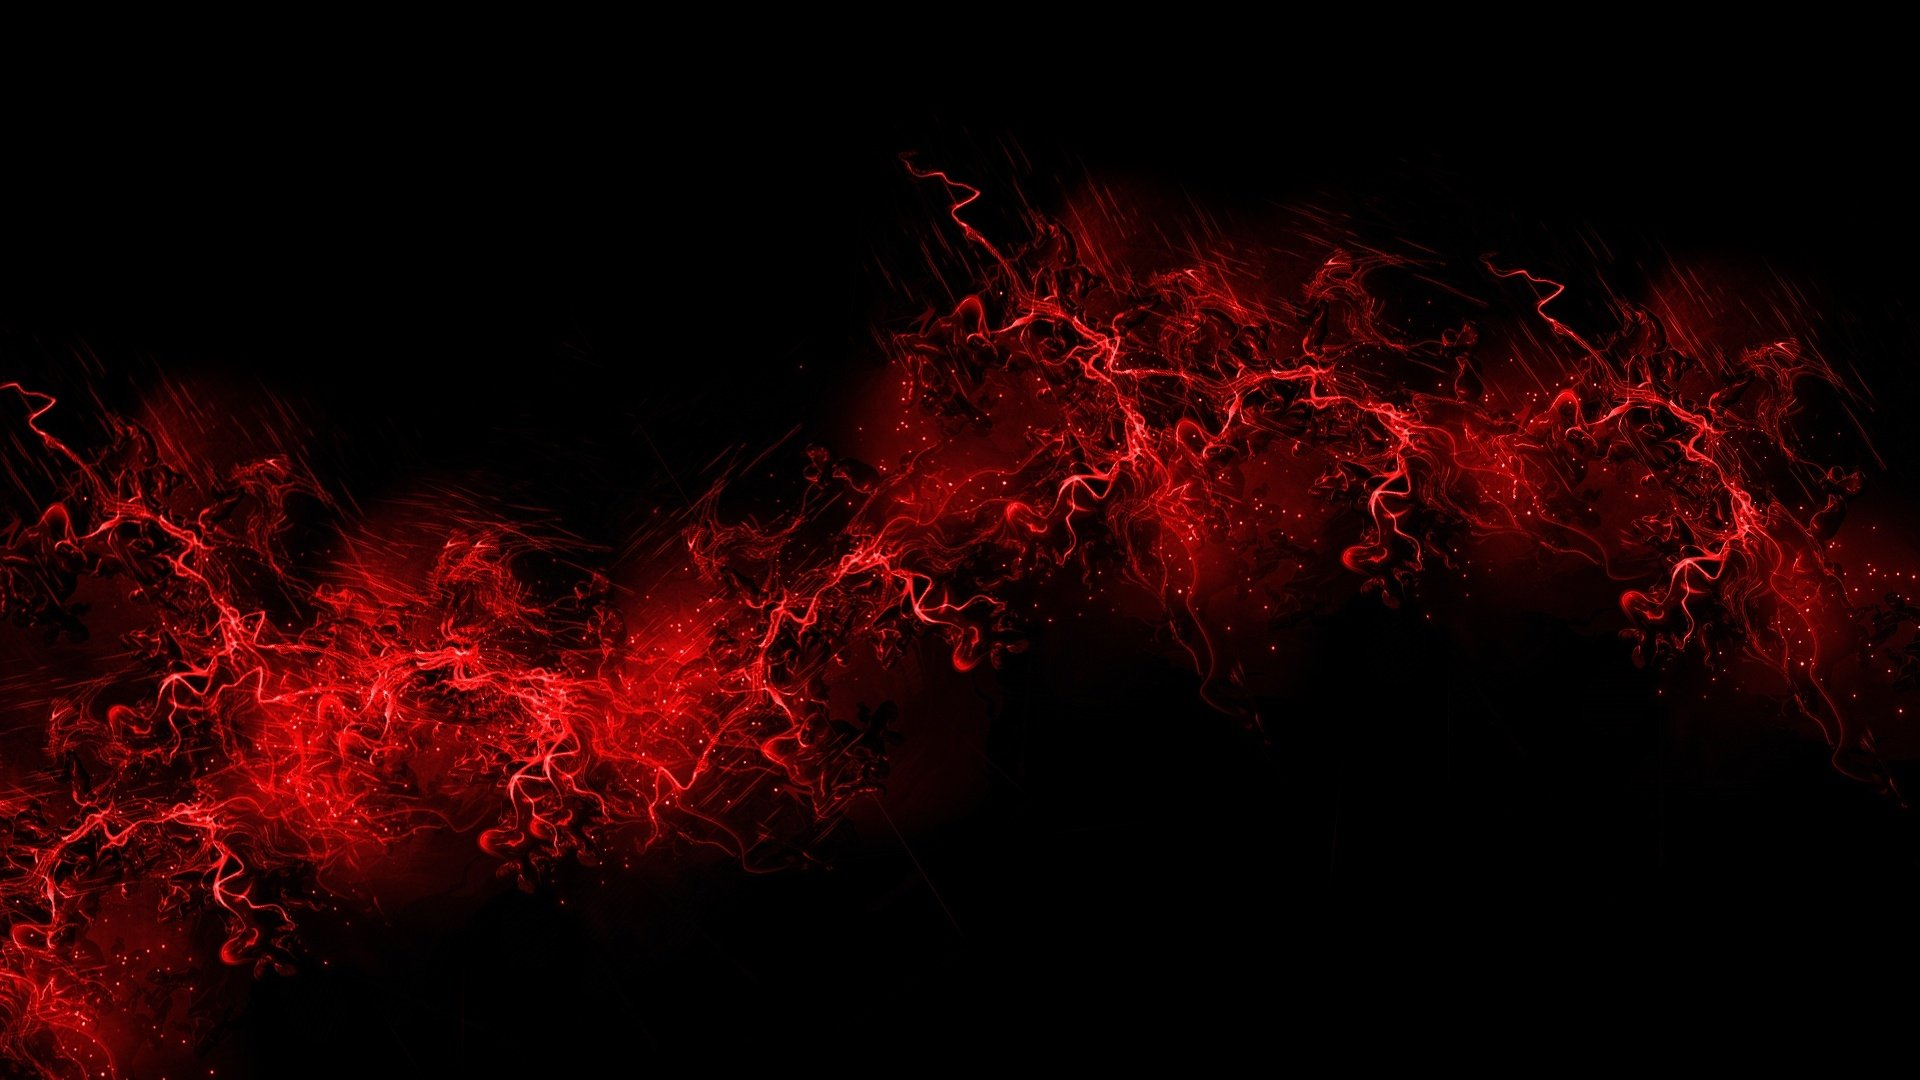 Black and red wallpaper 1920x1080 wallpapersafari for Black red wallpaper